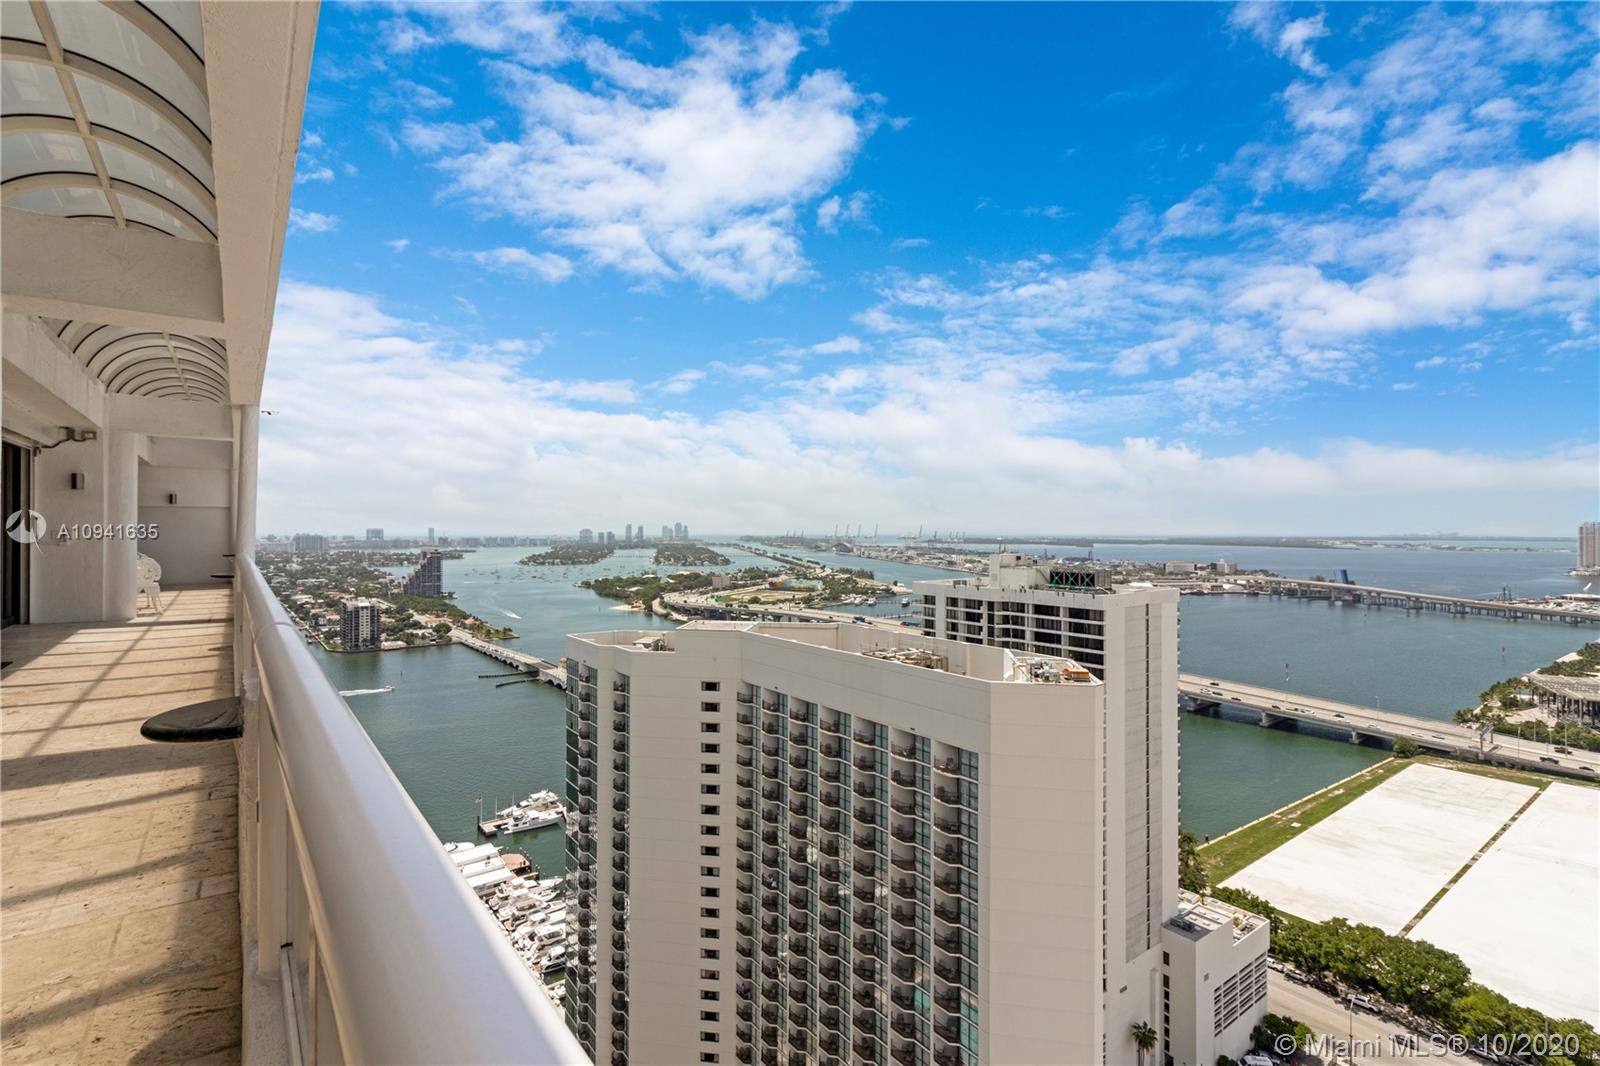 Top floor penthouse with spectacular panoramic views of the bay and the Miami skyline. EVERYTHING in this Penthouse is brand new. 40 X 60 top of the line porcelain flooring and quartz kitchen counters.  Top of the line appliances. Pet friendly building. The location is perfectly centralized between Downtown, Design District, Wynwood, Edgewater, Brickell, Venetian Islands, Sunset Harbour, Lincoln Road, and the beach!!! Feel at home in this Biscayne Bayfront condo with a private balcony. Located in the heart of Miami's exclusive Arts+Entertainment District, just one mile from the Port of Miami, and within walking distance to the Adrienne Arsht Center for the Performing Arts, American Airlines Arena and Bayfront Park. SPECIAL ASSESSMENTS paid by Seller as of closing.